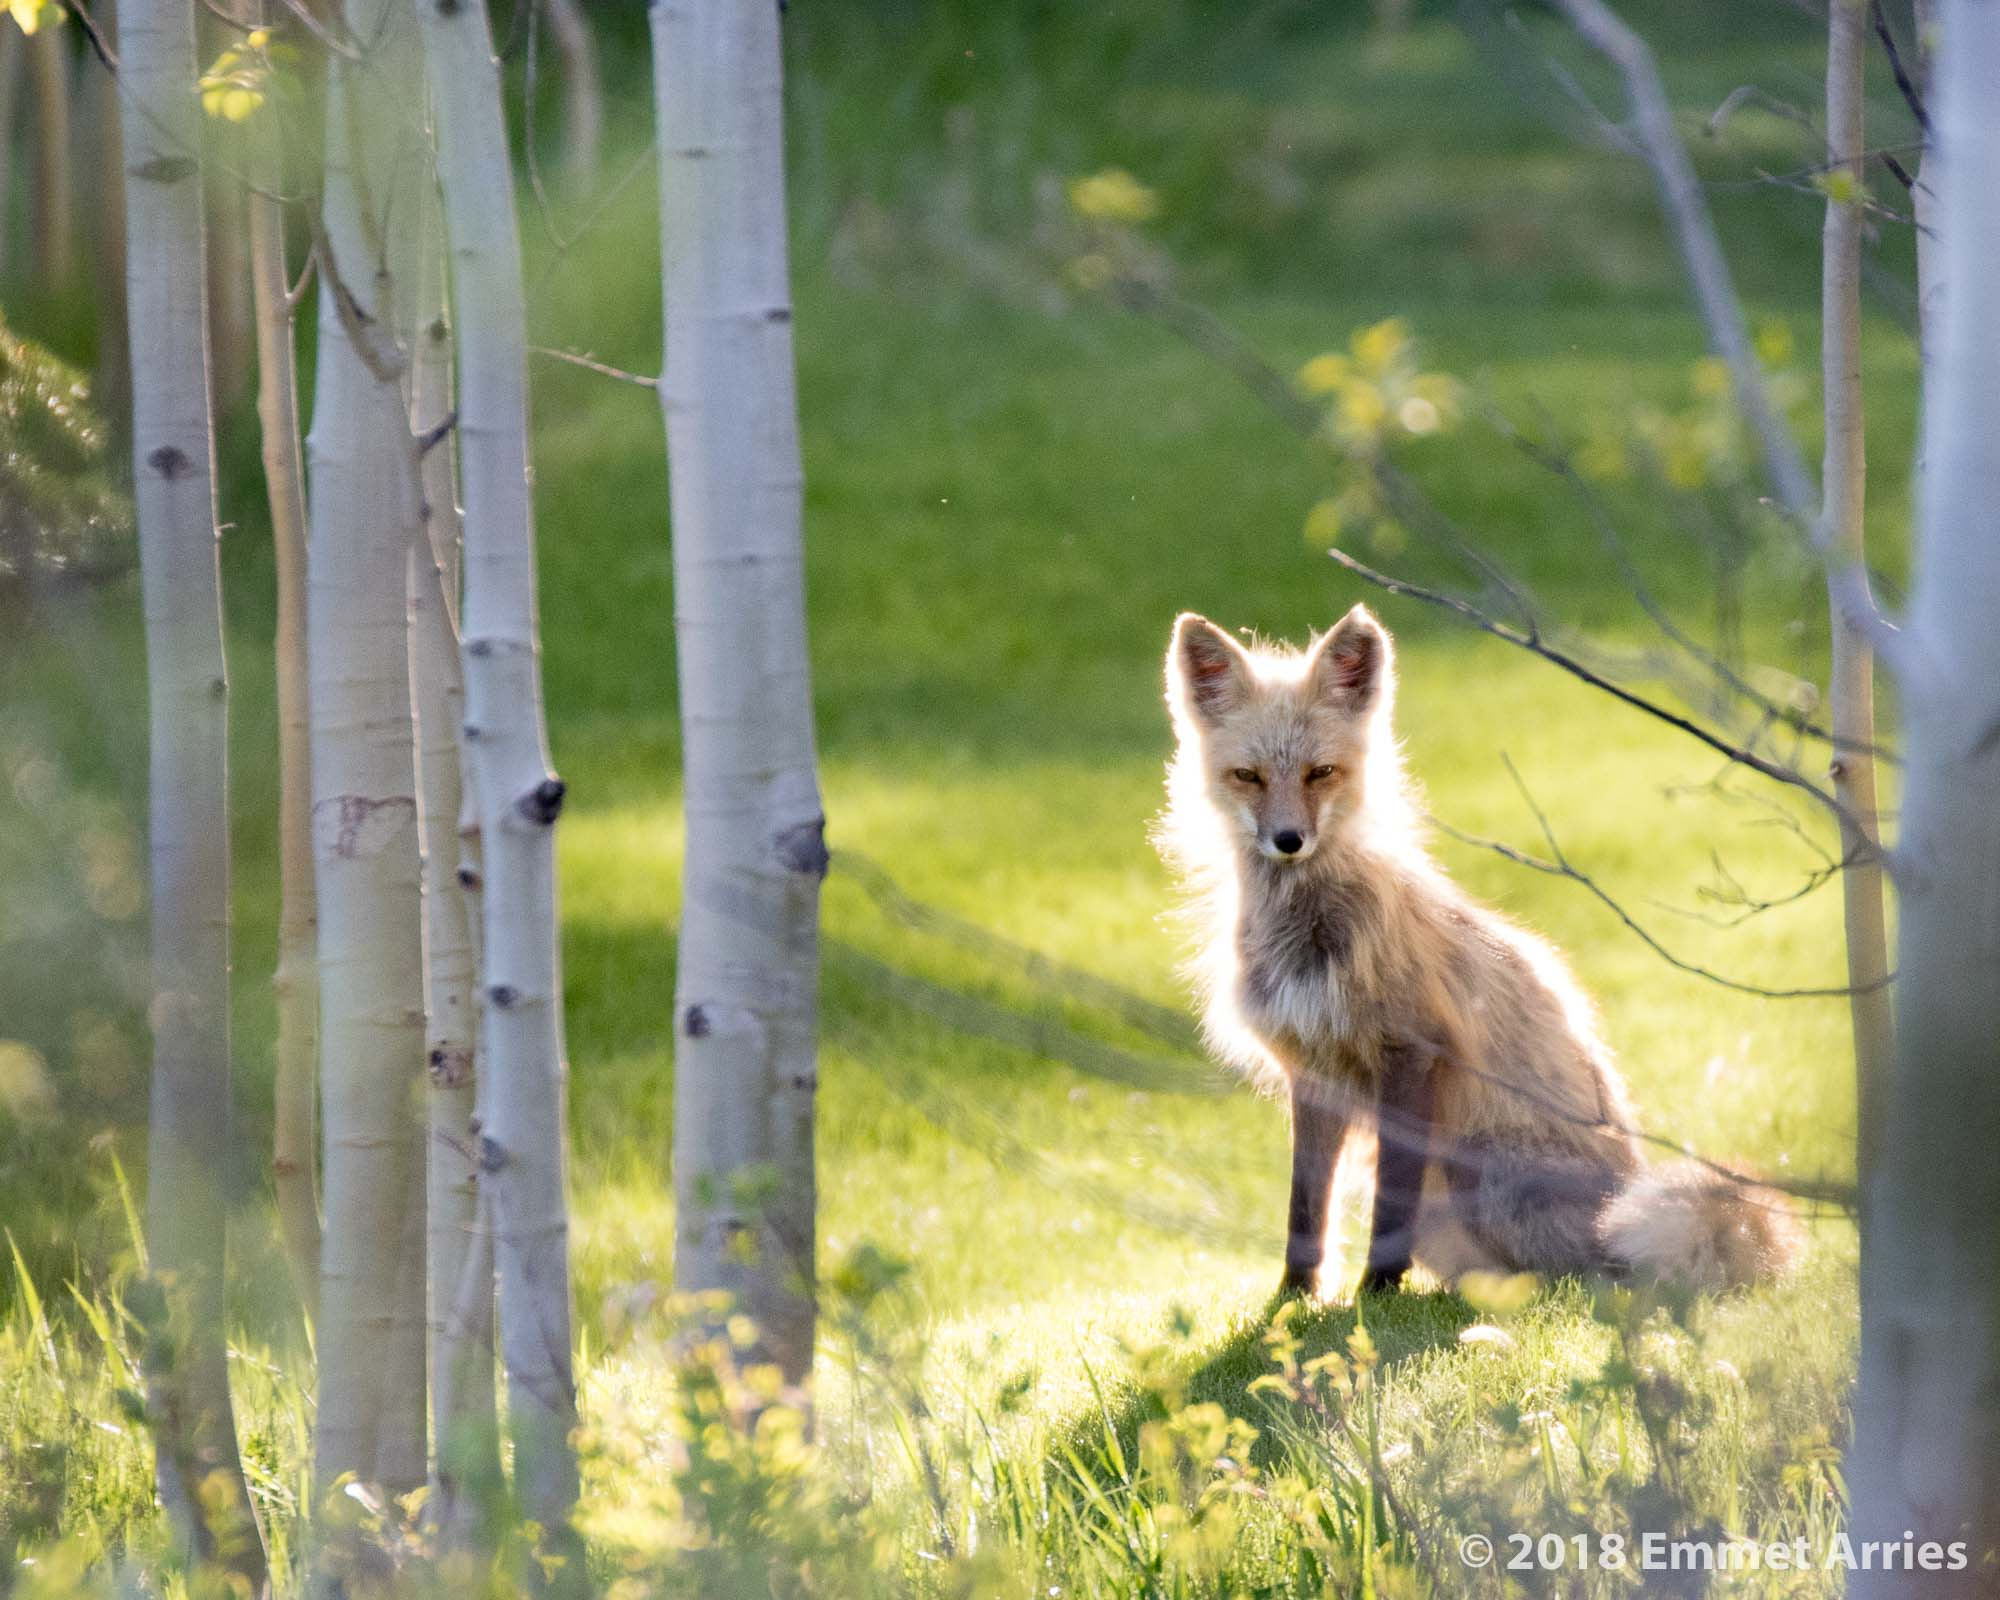 This Red Fox was wandering around a residential area. It is sure an unusual (at least for now) sight to see a fox sitting on somebody's lawn.